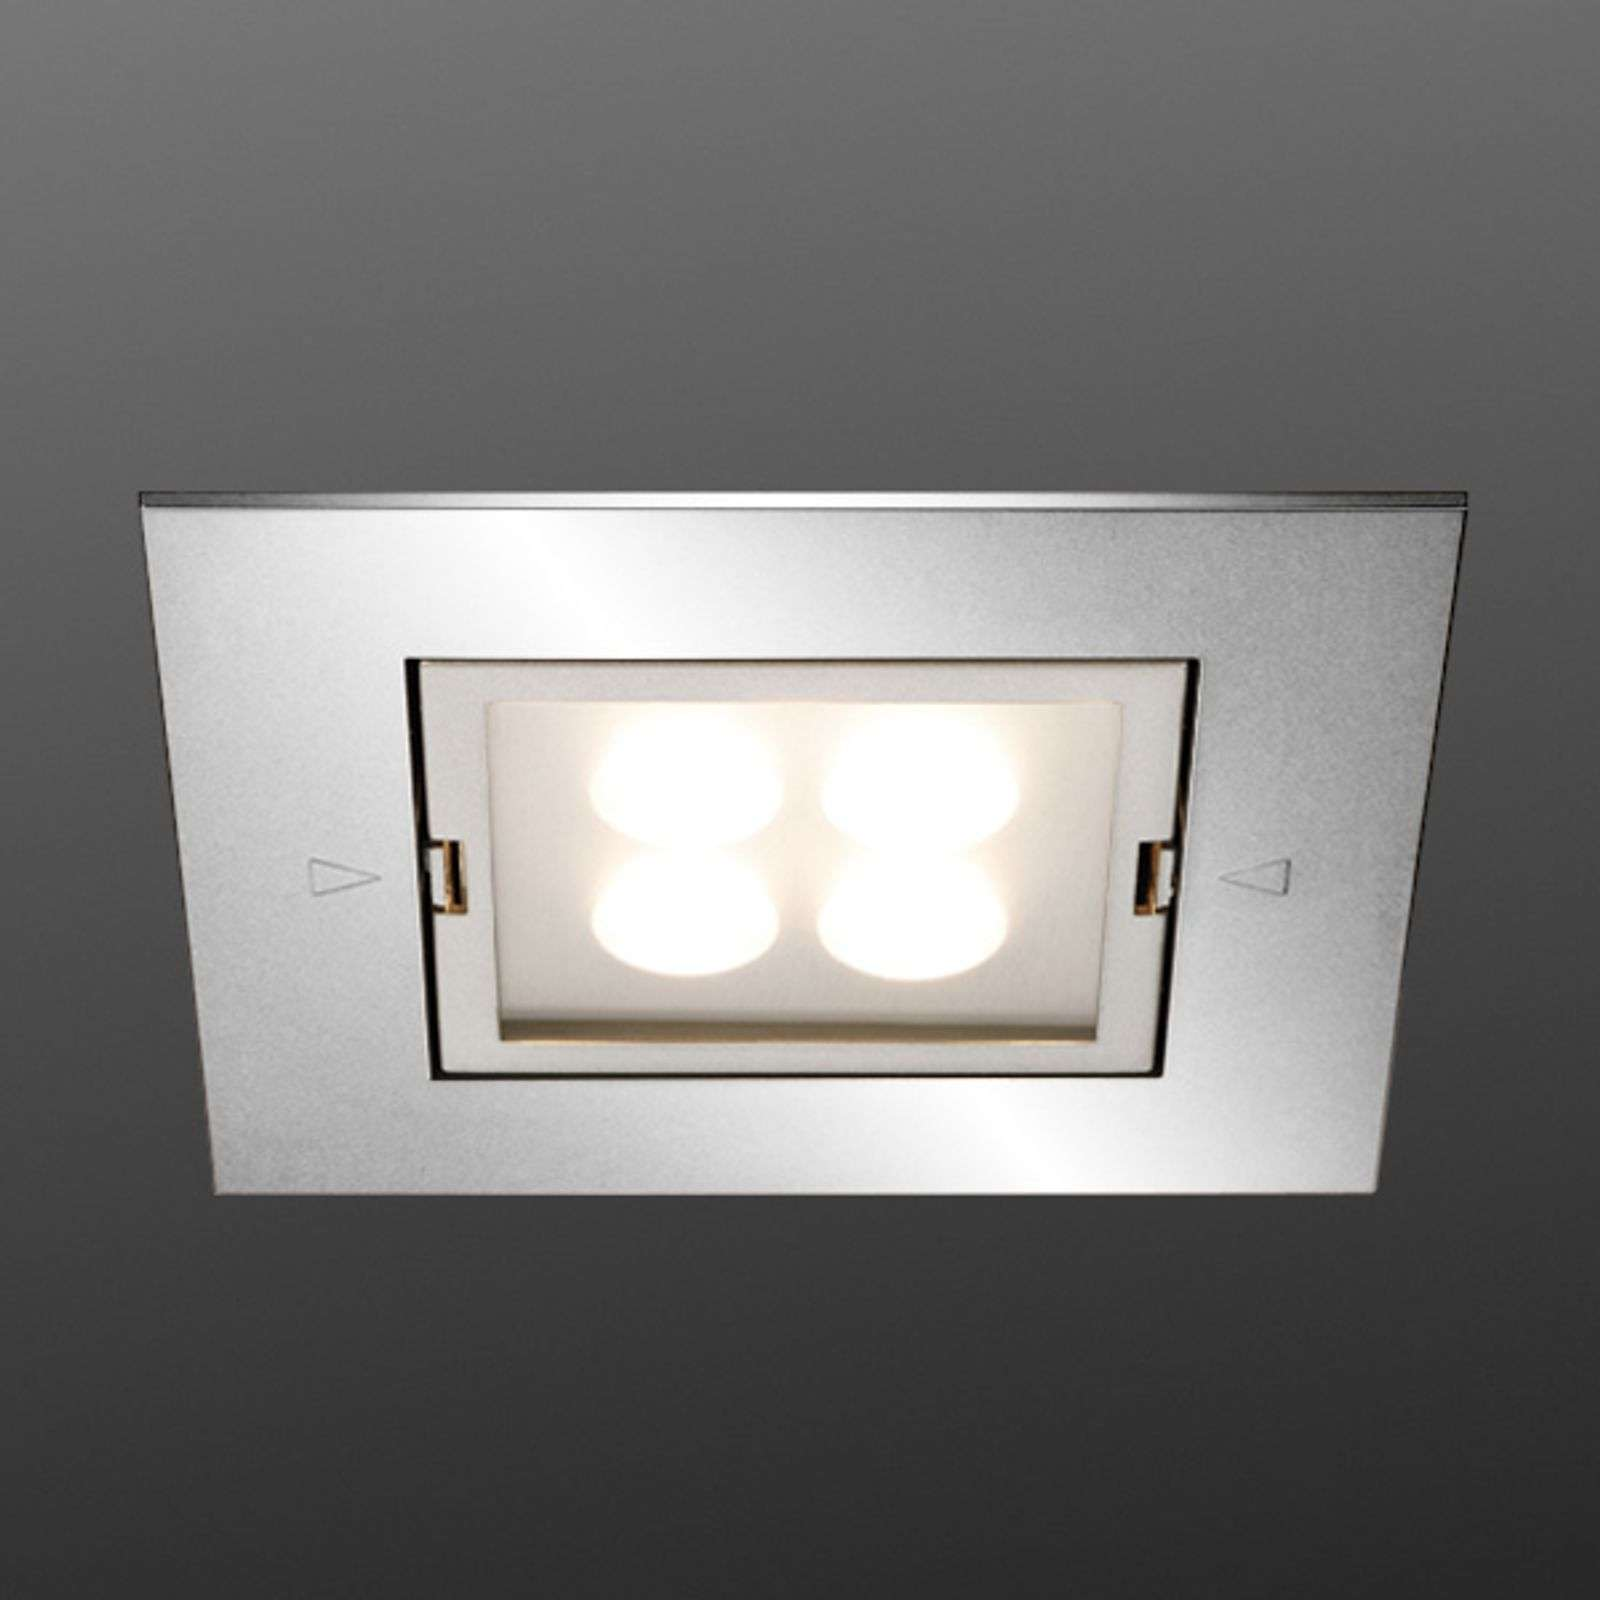 Spot encastrable ARF-Q LED 4 x 1 W inox